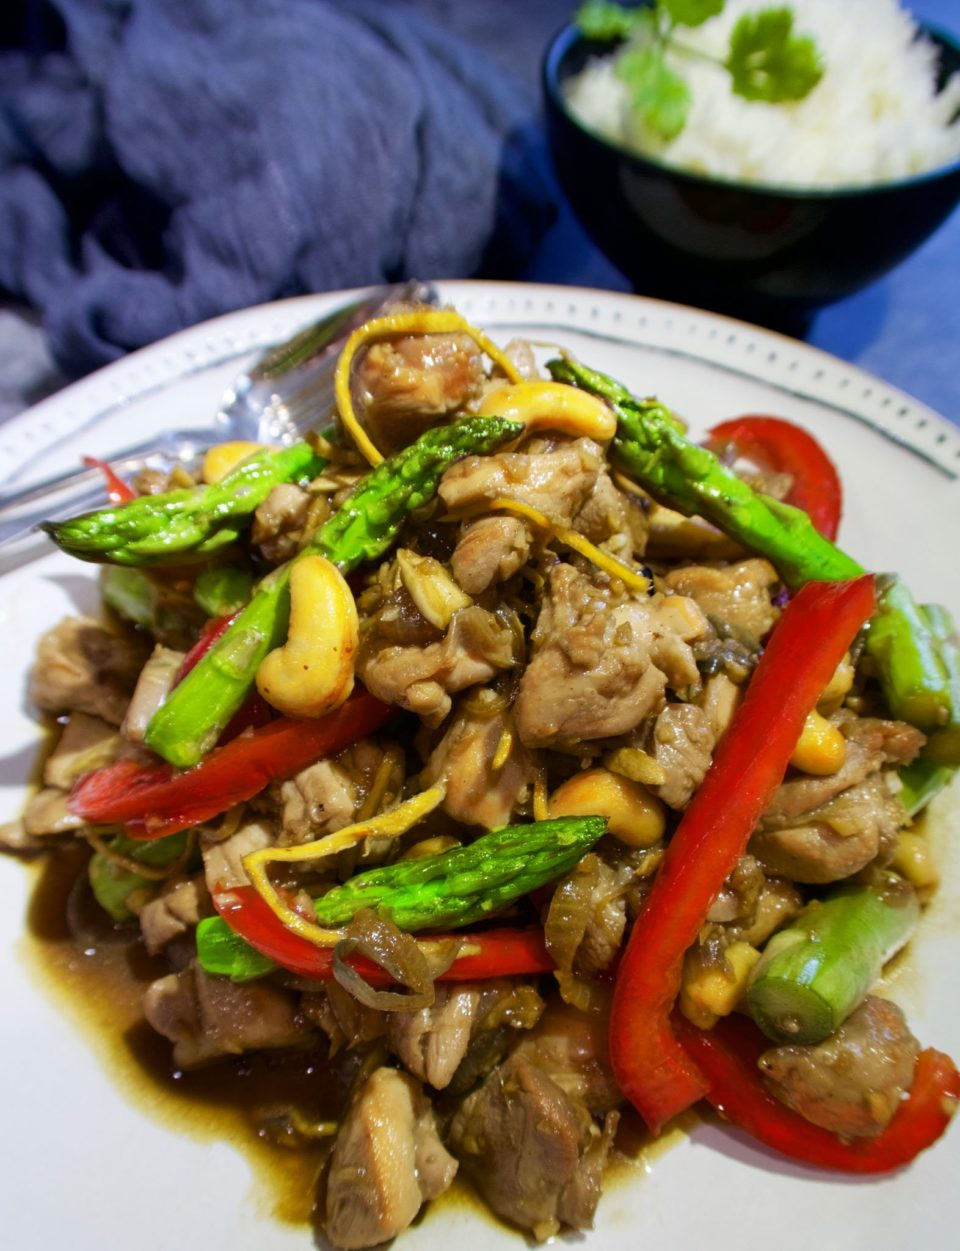 CHICKEN STIR FRY WITH ASPARAGUS AND GINGER